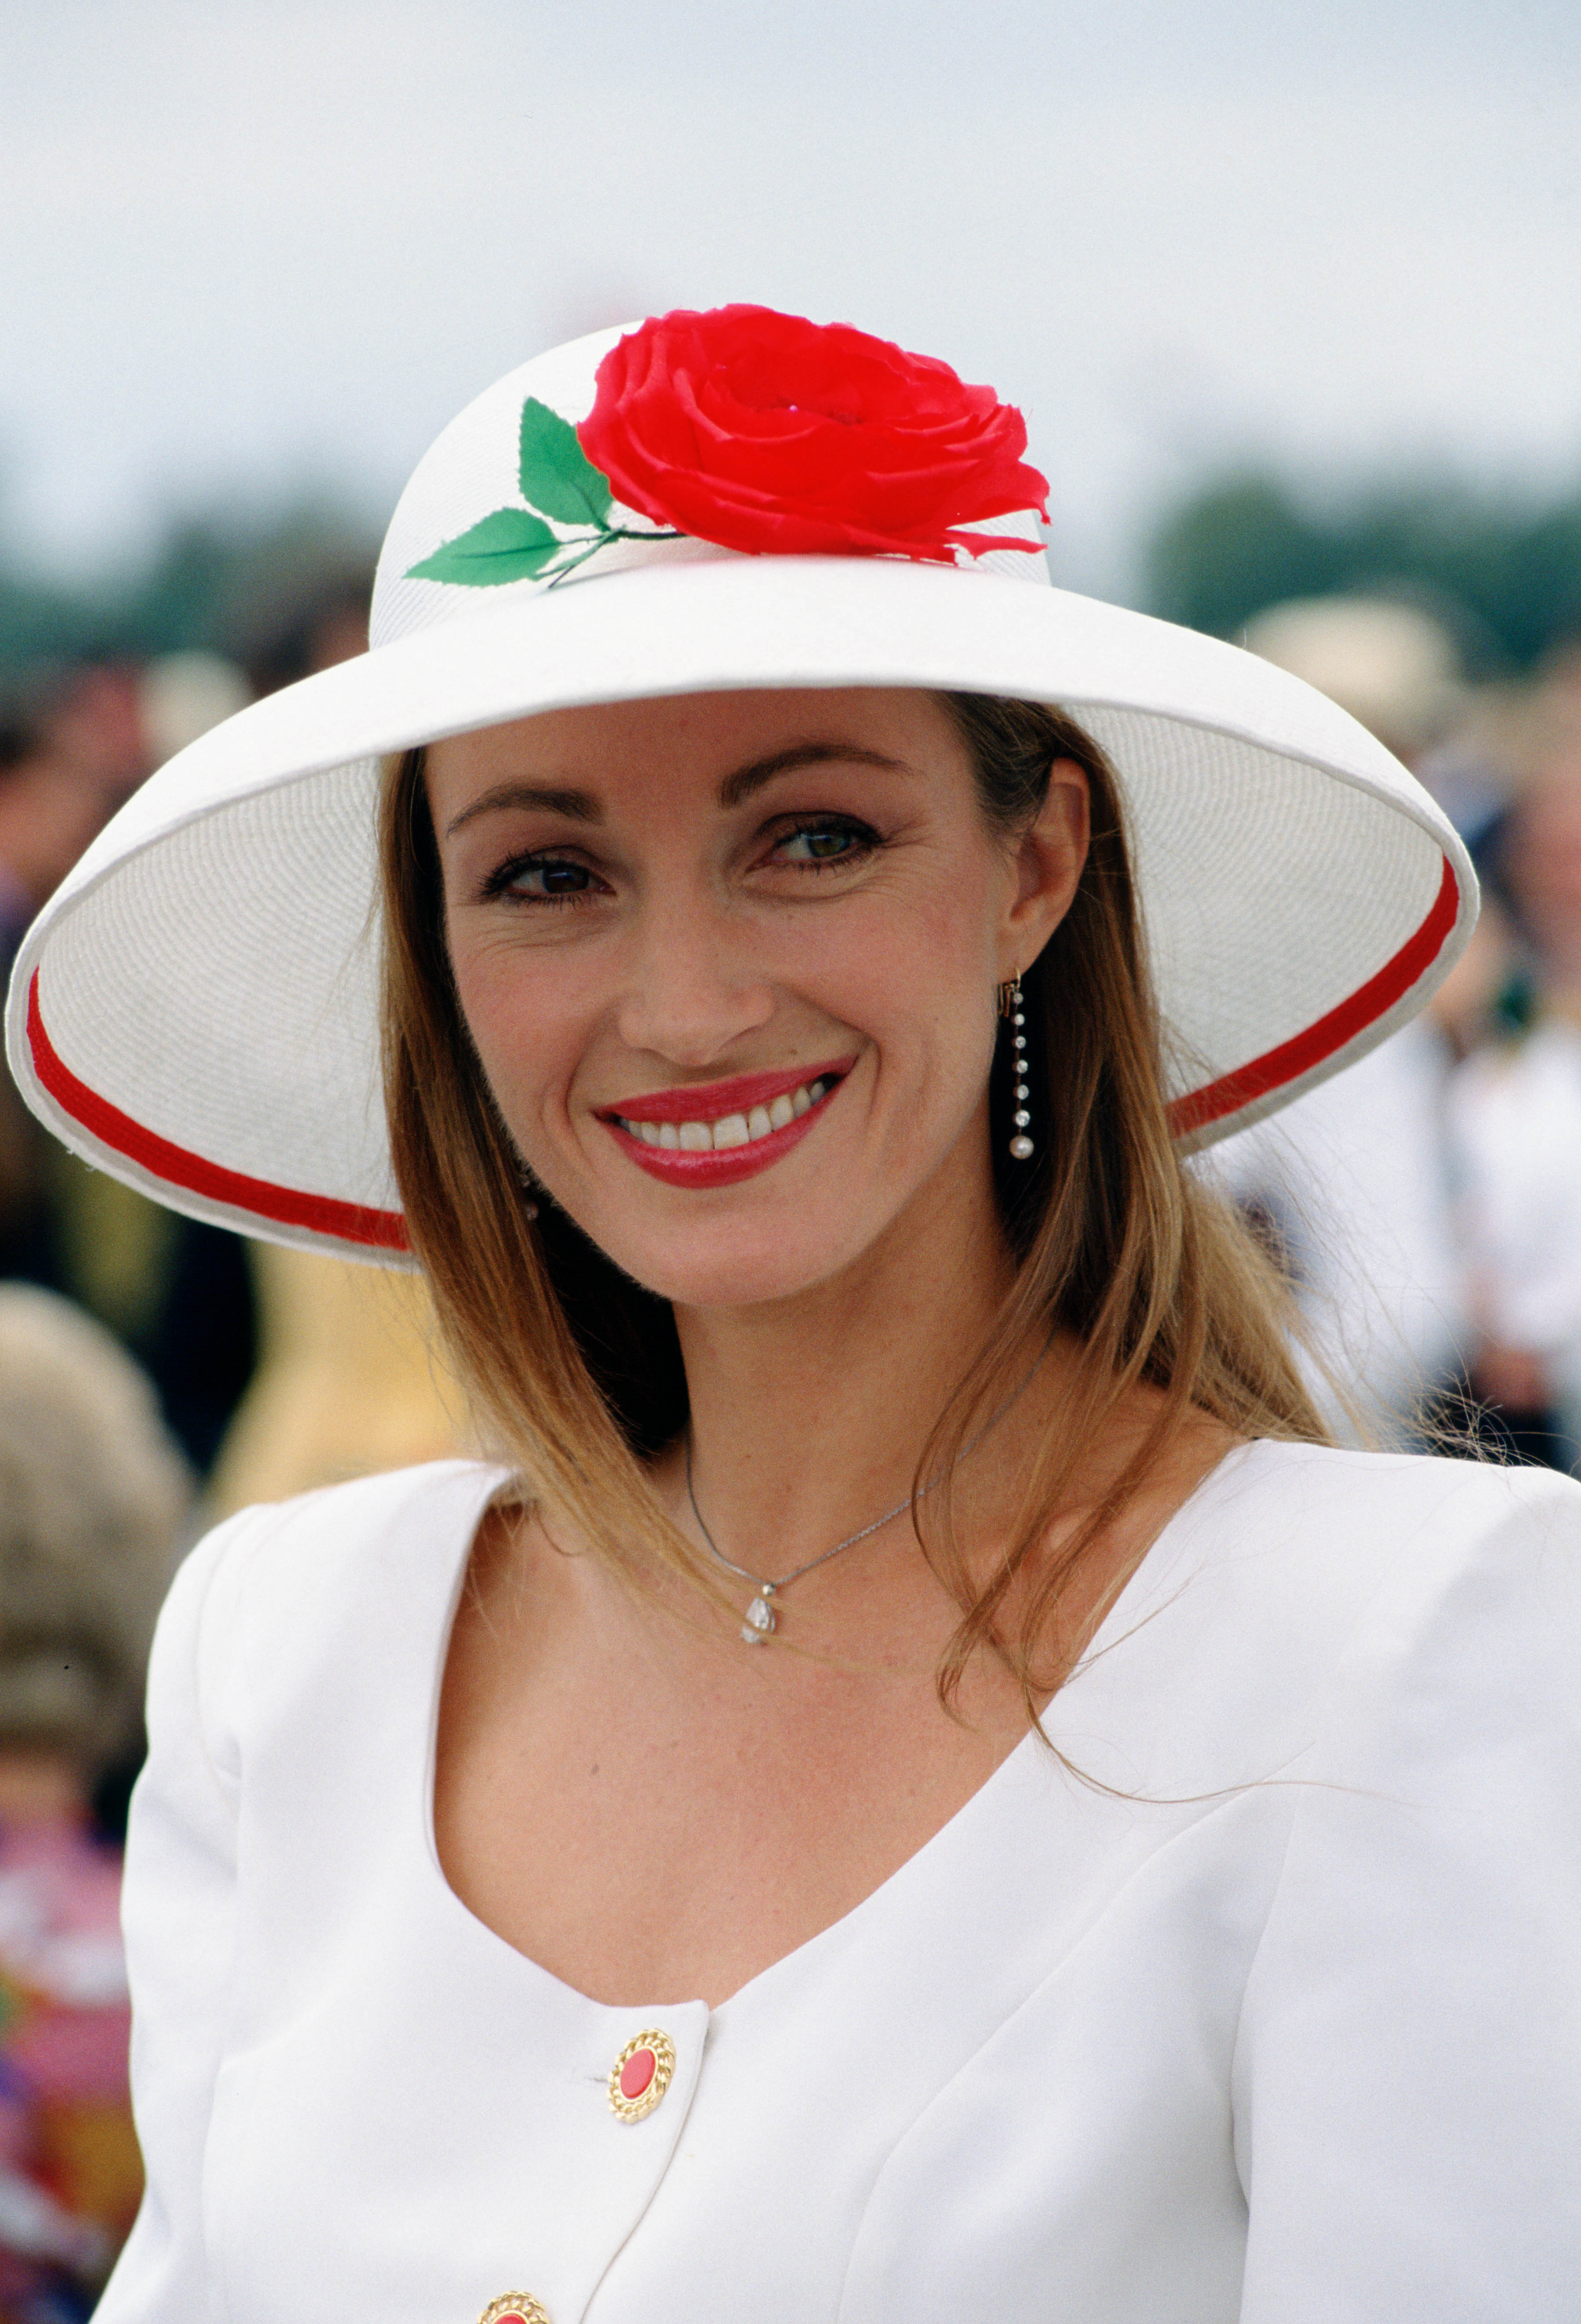 Jane Seymour attend the Cartier Polo Day in Windsor, Berkshire, UK on July 29, 1990. | Source: Getty Images.